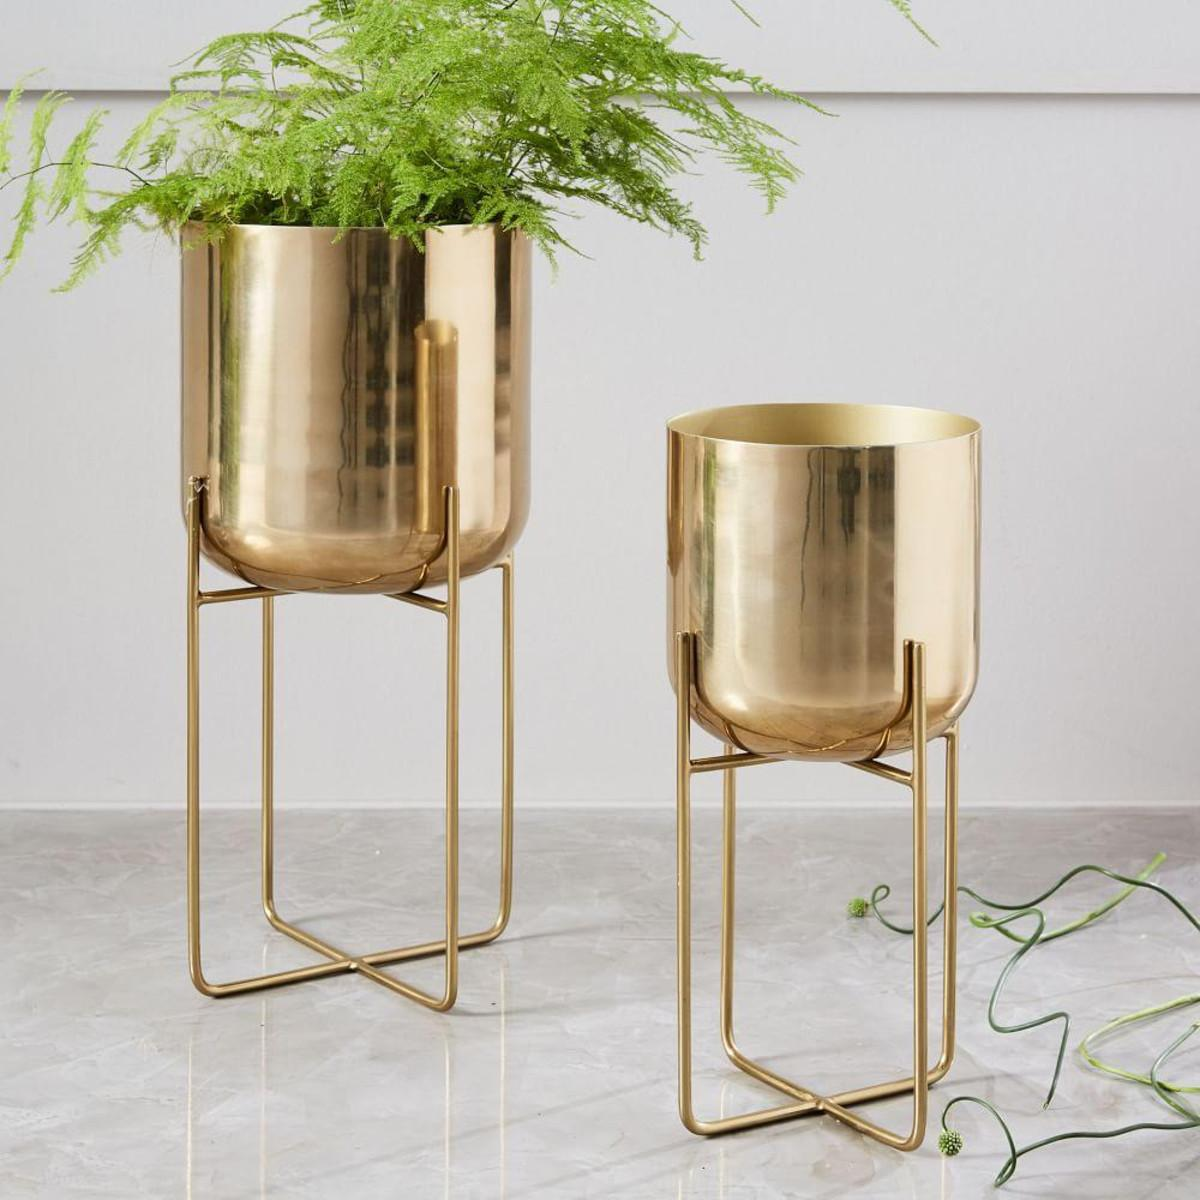 Spun Metal Standing Planter West Elm